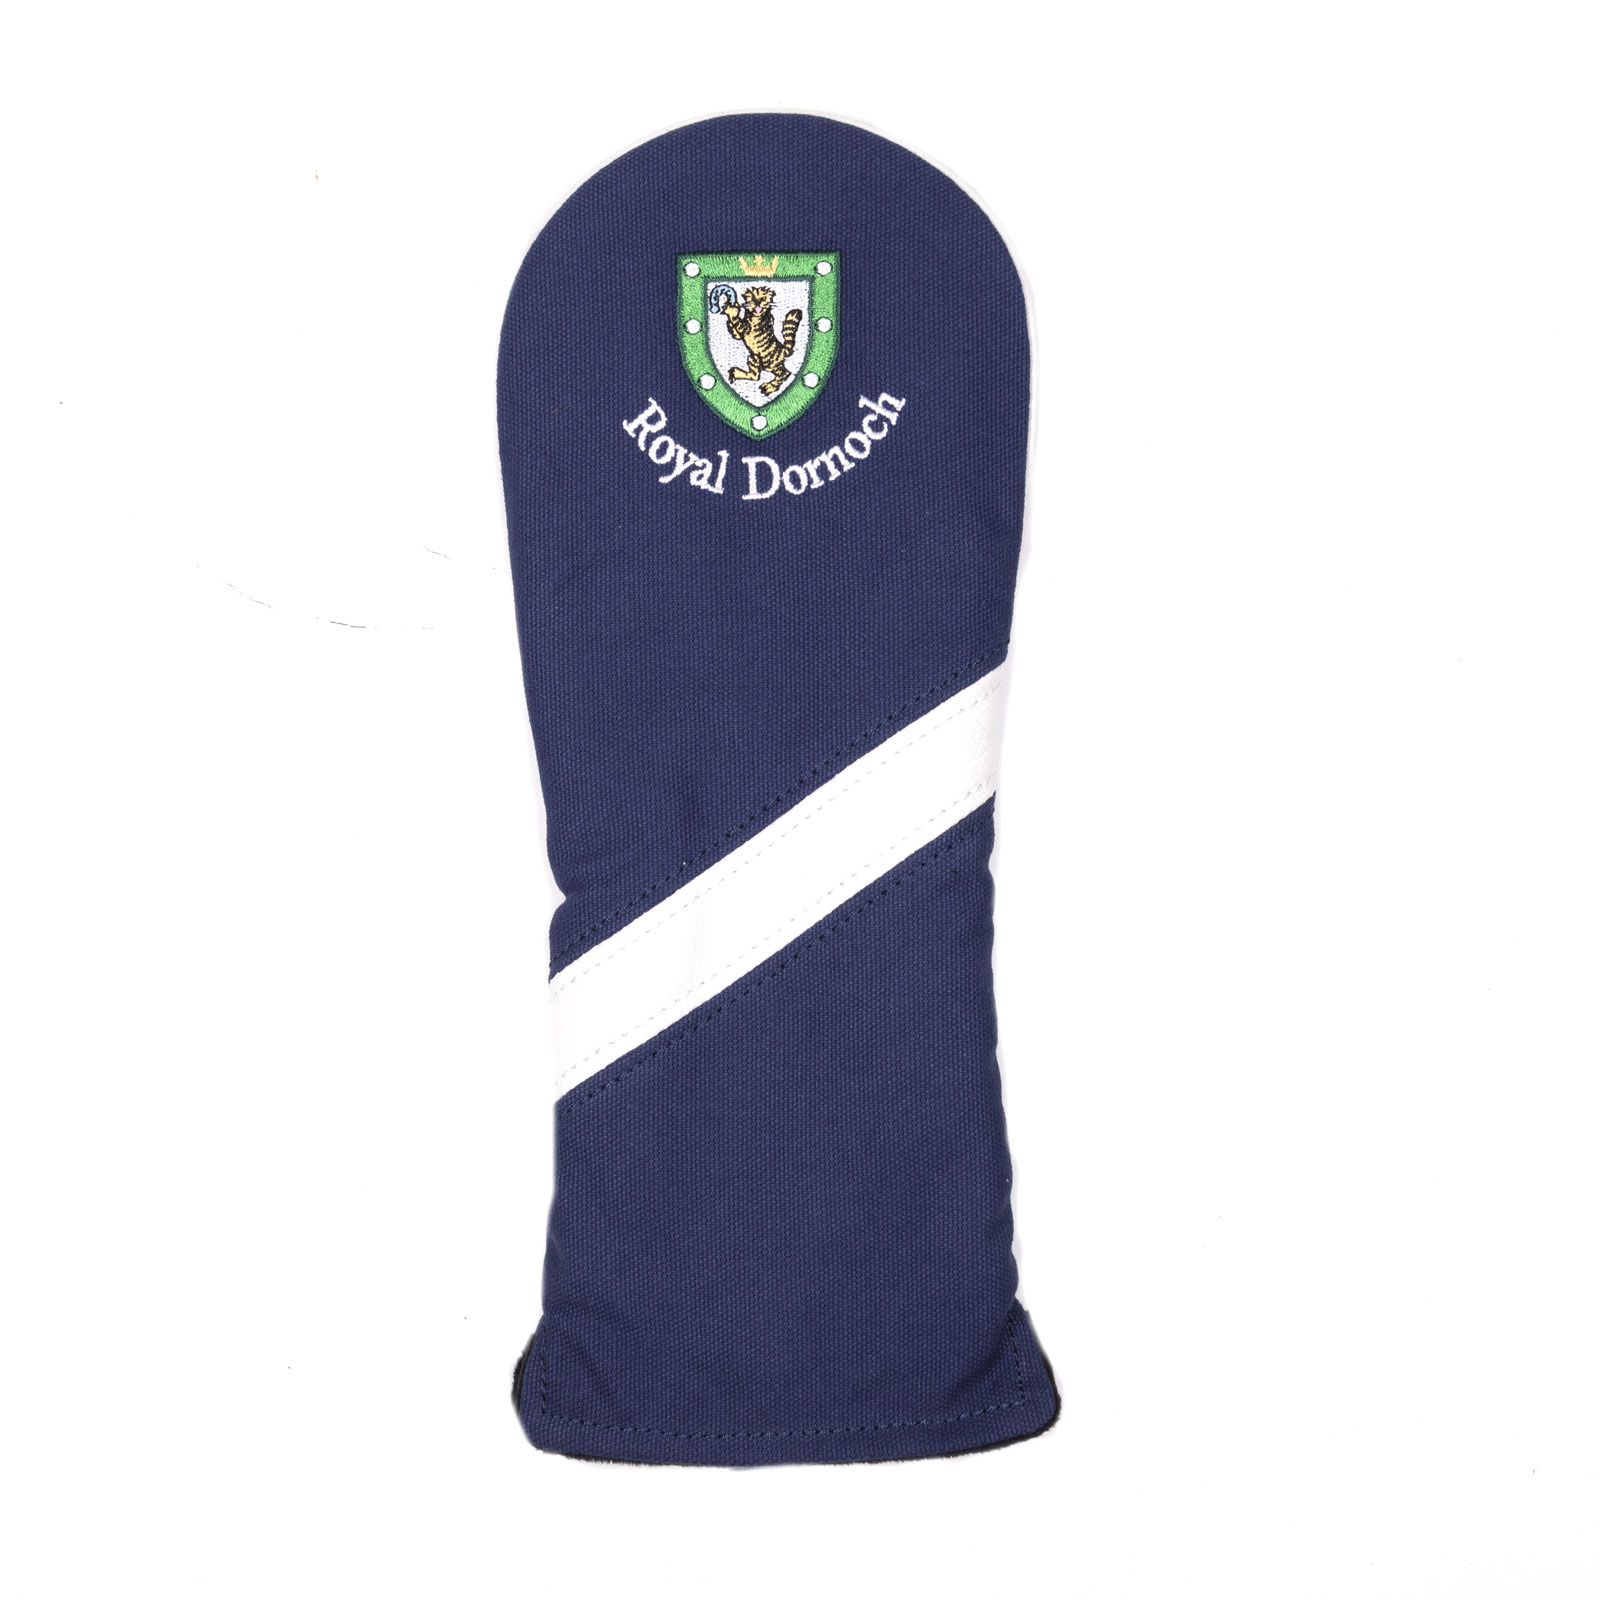 Vanto Leather Canvas Headcover Royal Dornoch Pro Shop